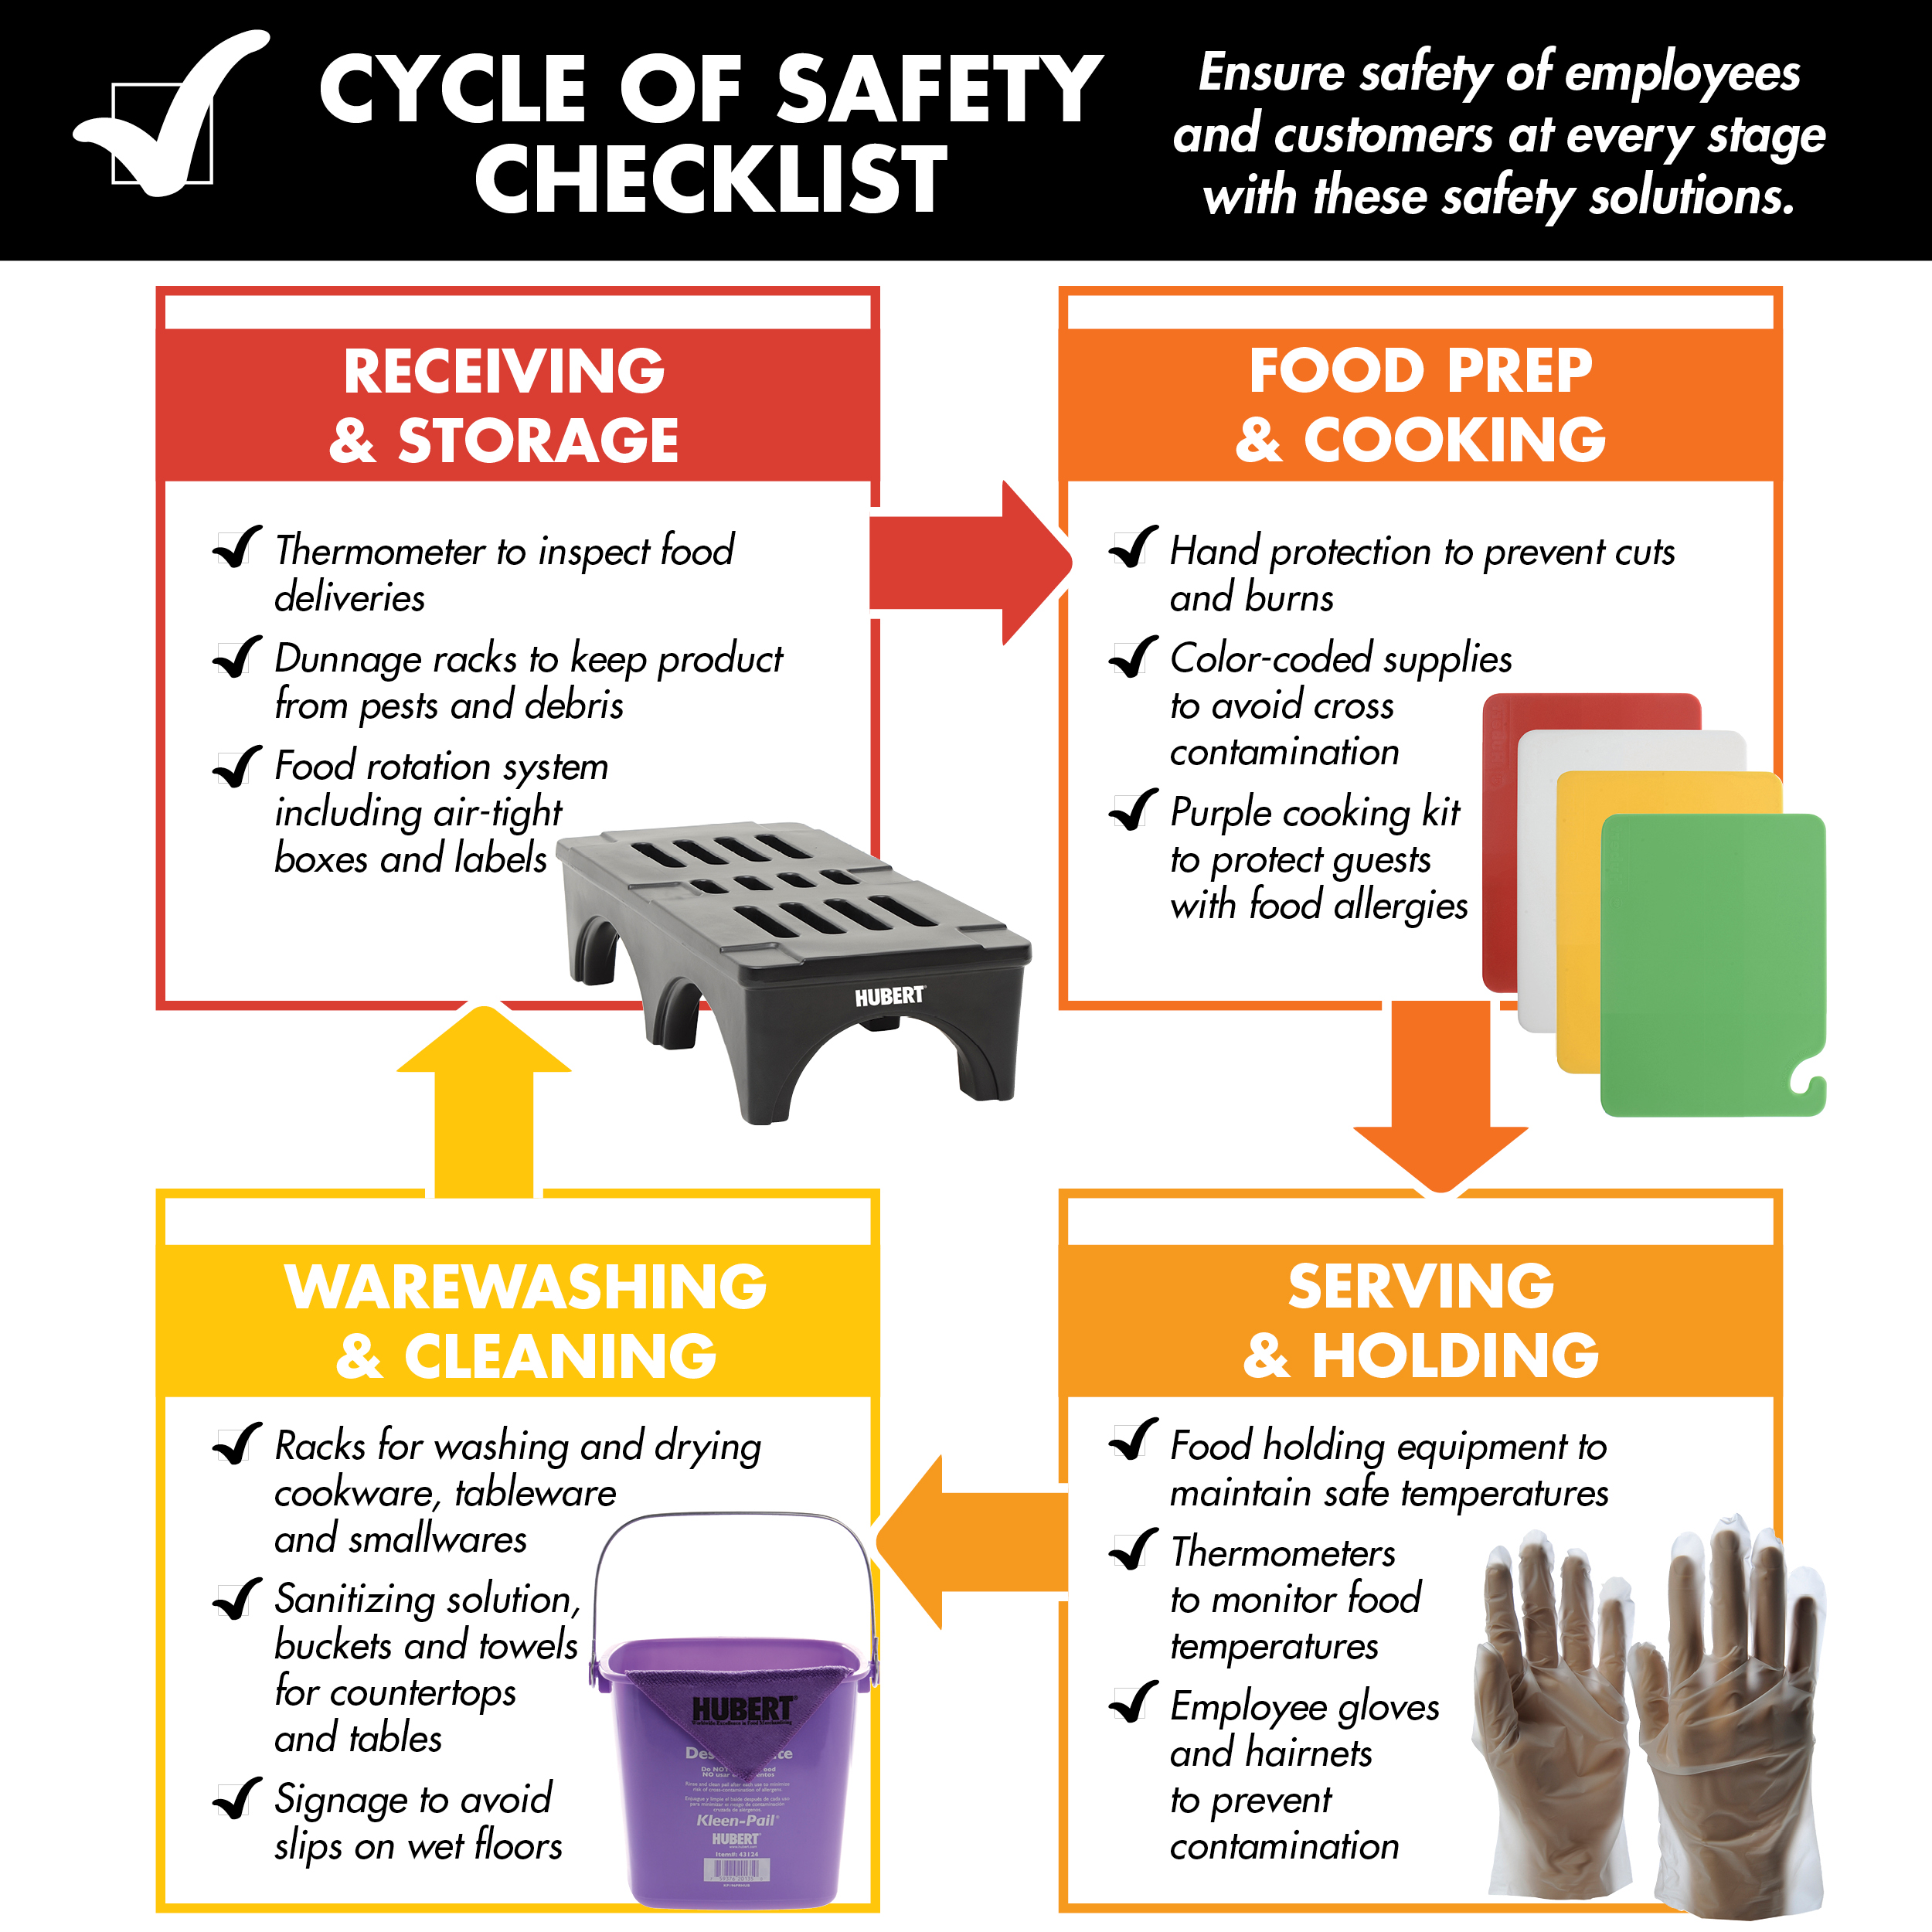 catering services serving food safety guidelines